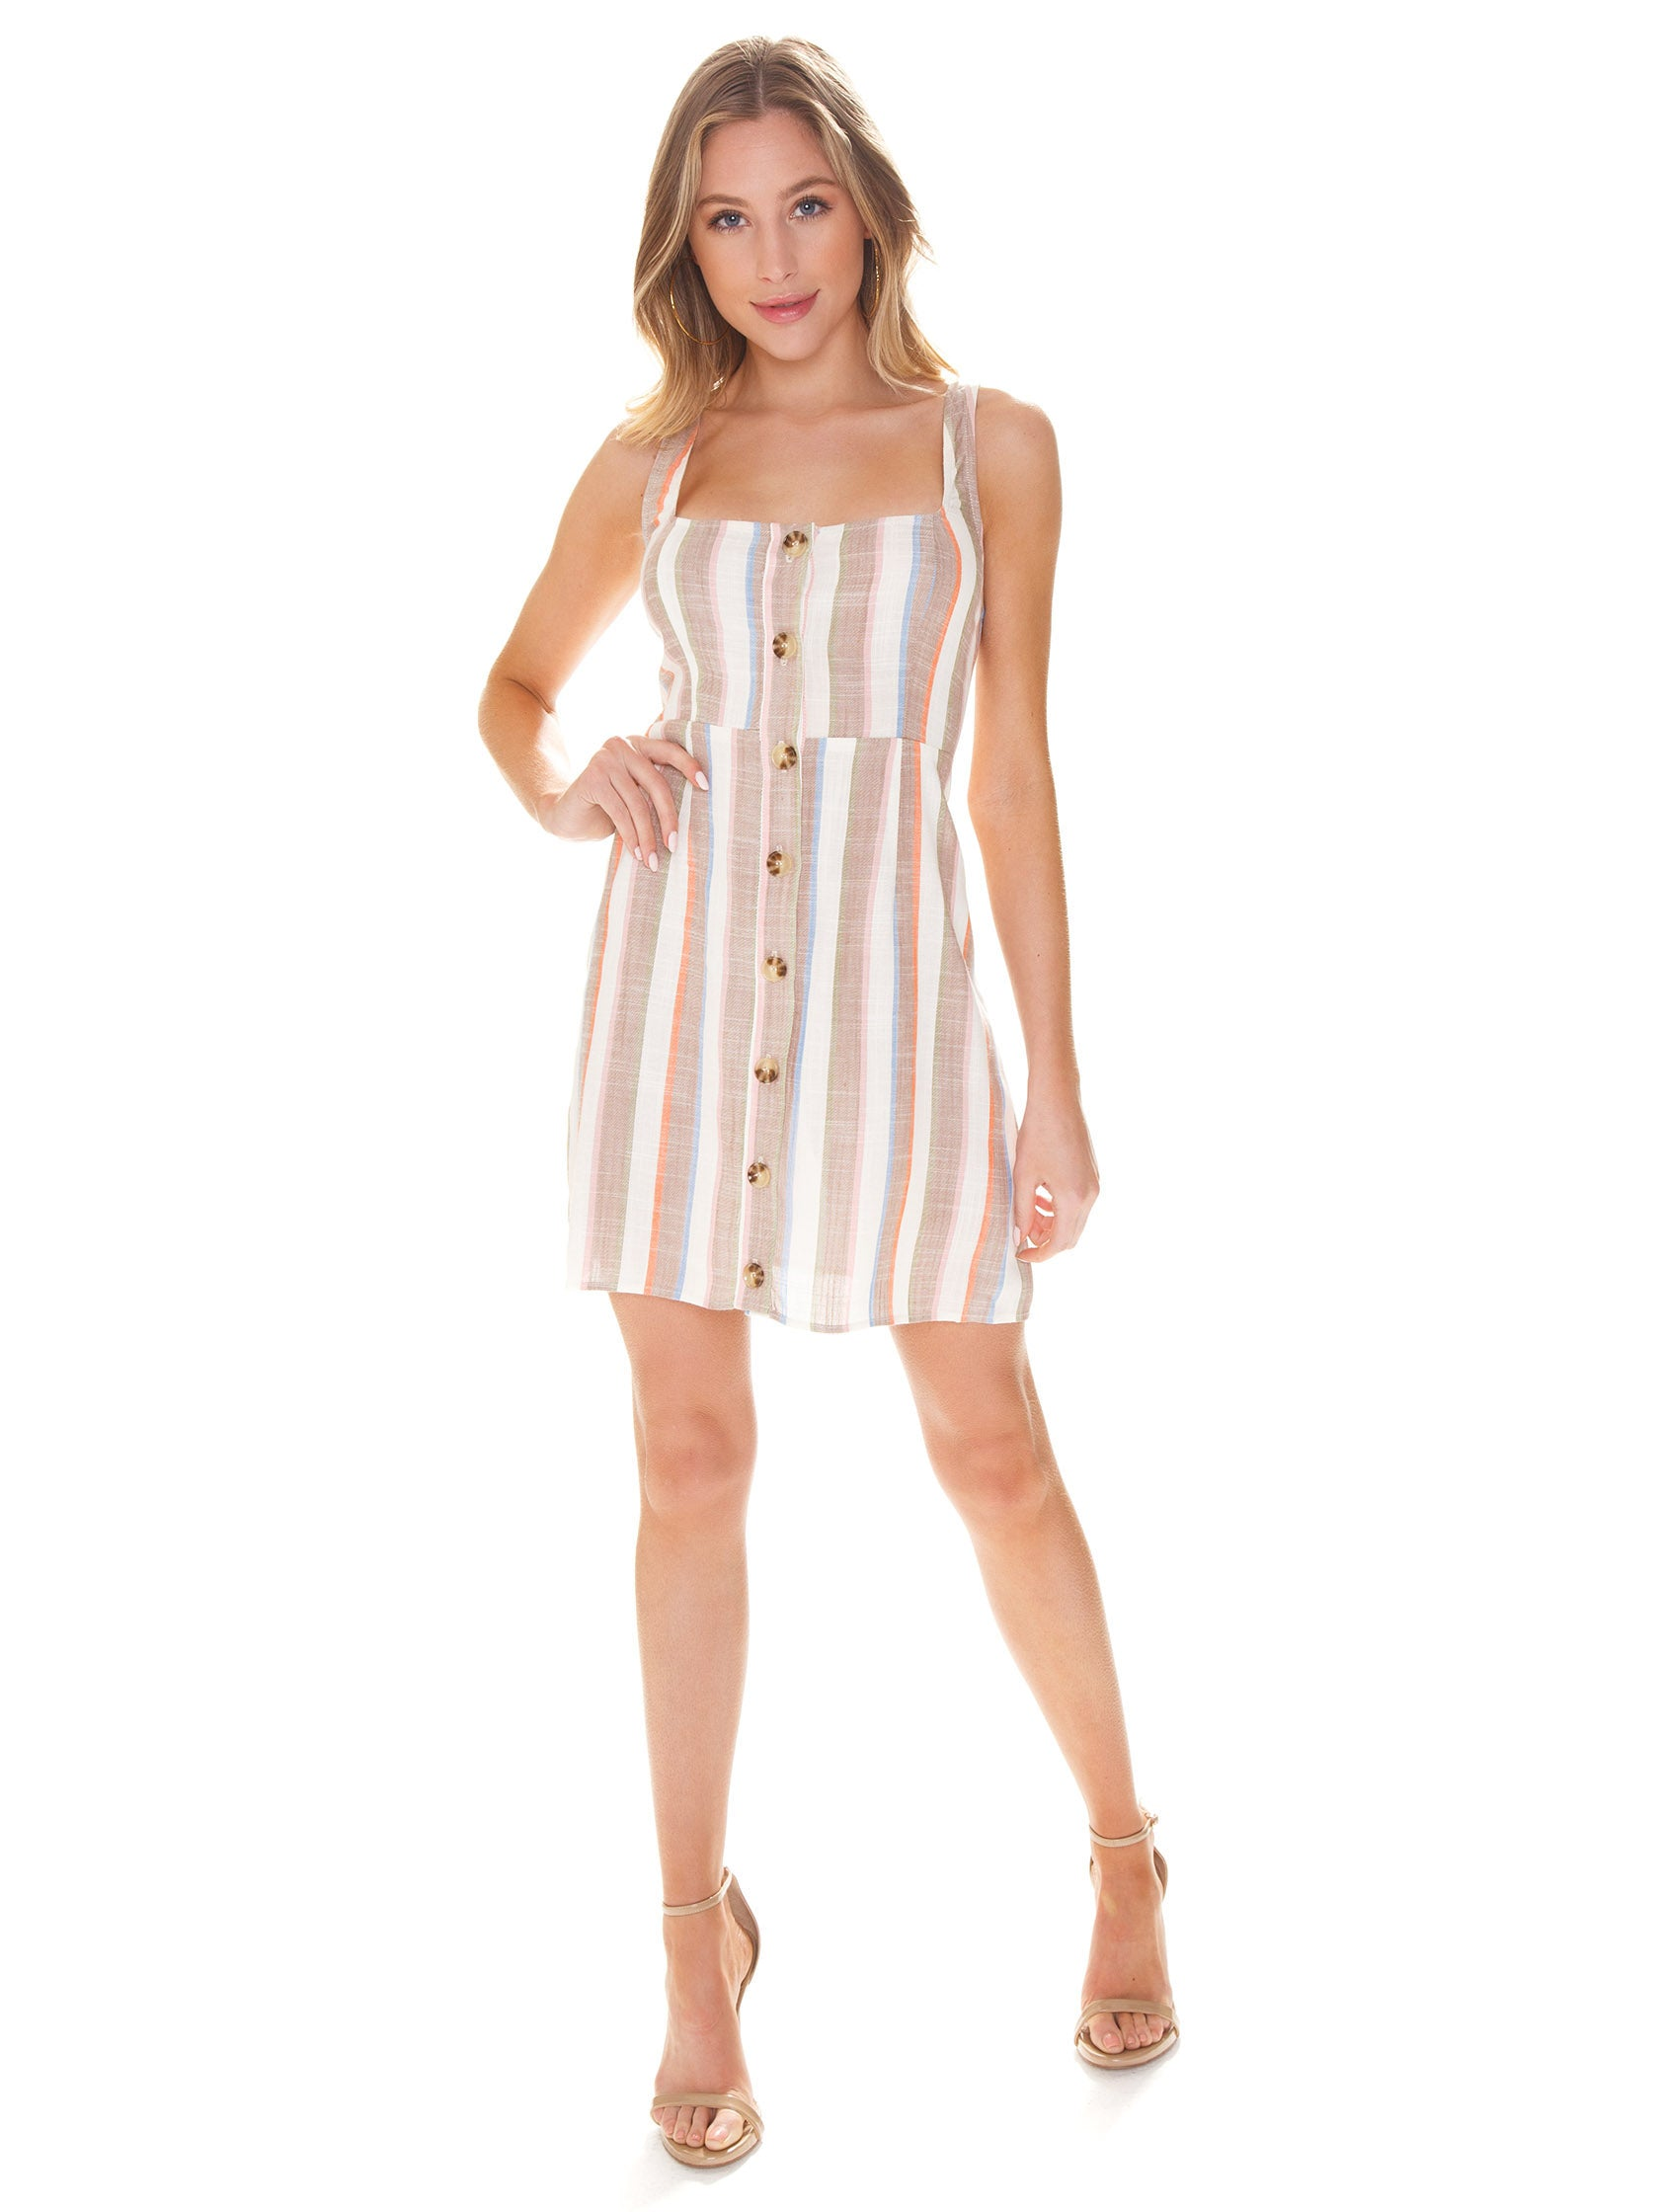 Girl outfit in a dress rental from Show Me Your Mumu called Cora Dress